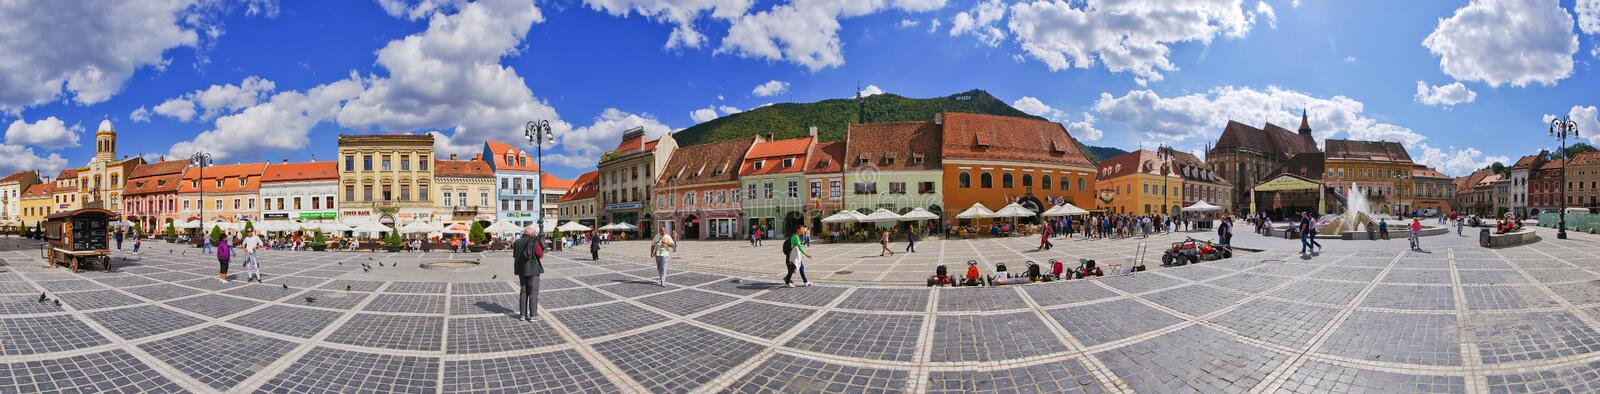 Crowded town square of Brasov, Romania. Brasov, Romania - September 09, 2015: Crowded town square. The birthplace of the national anthem of Romania royalty free stock photos